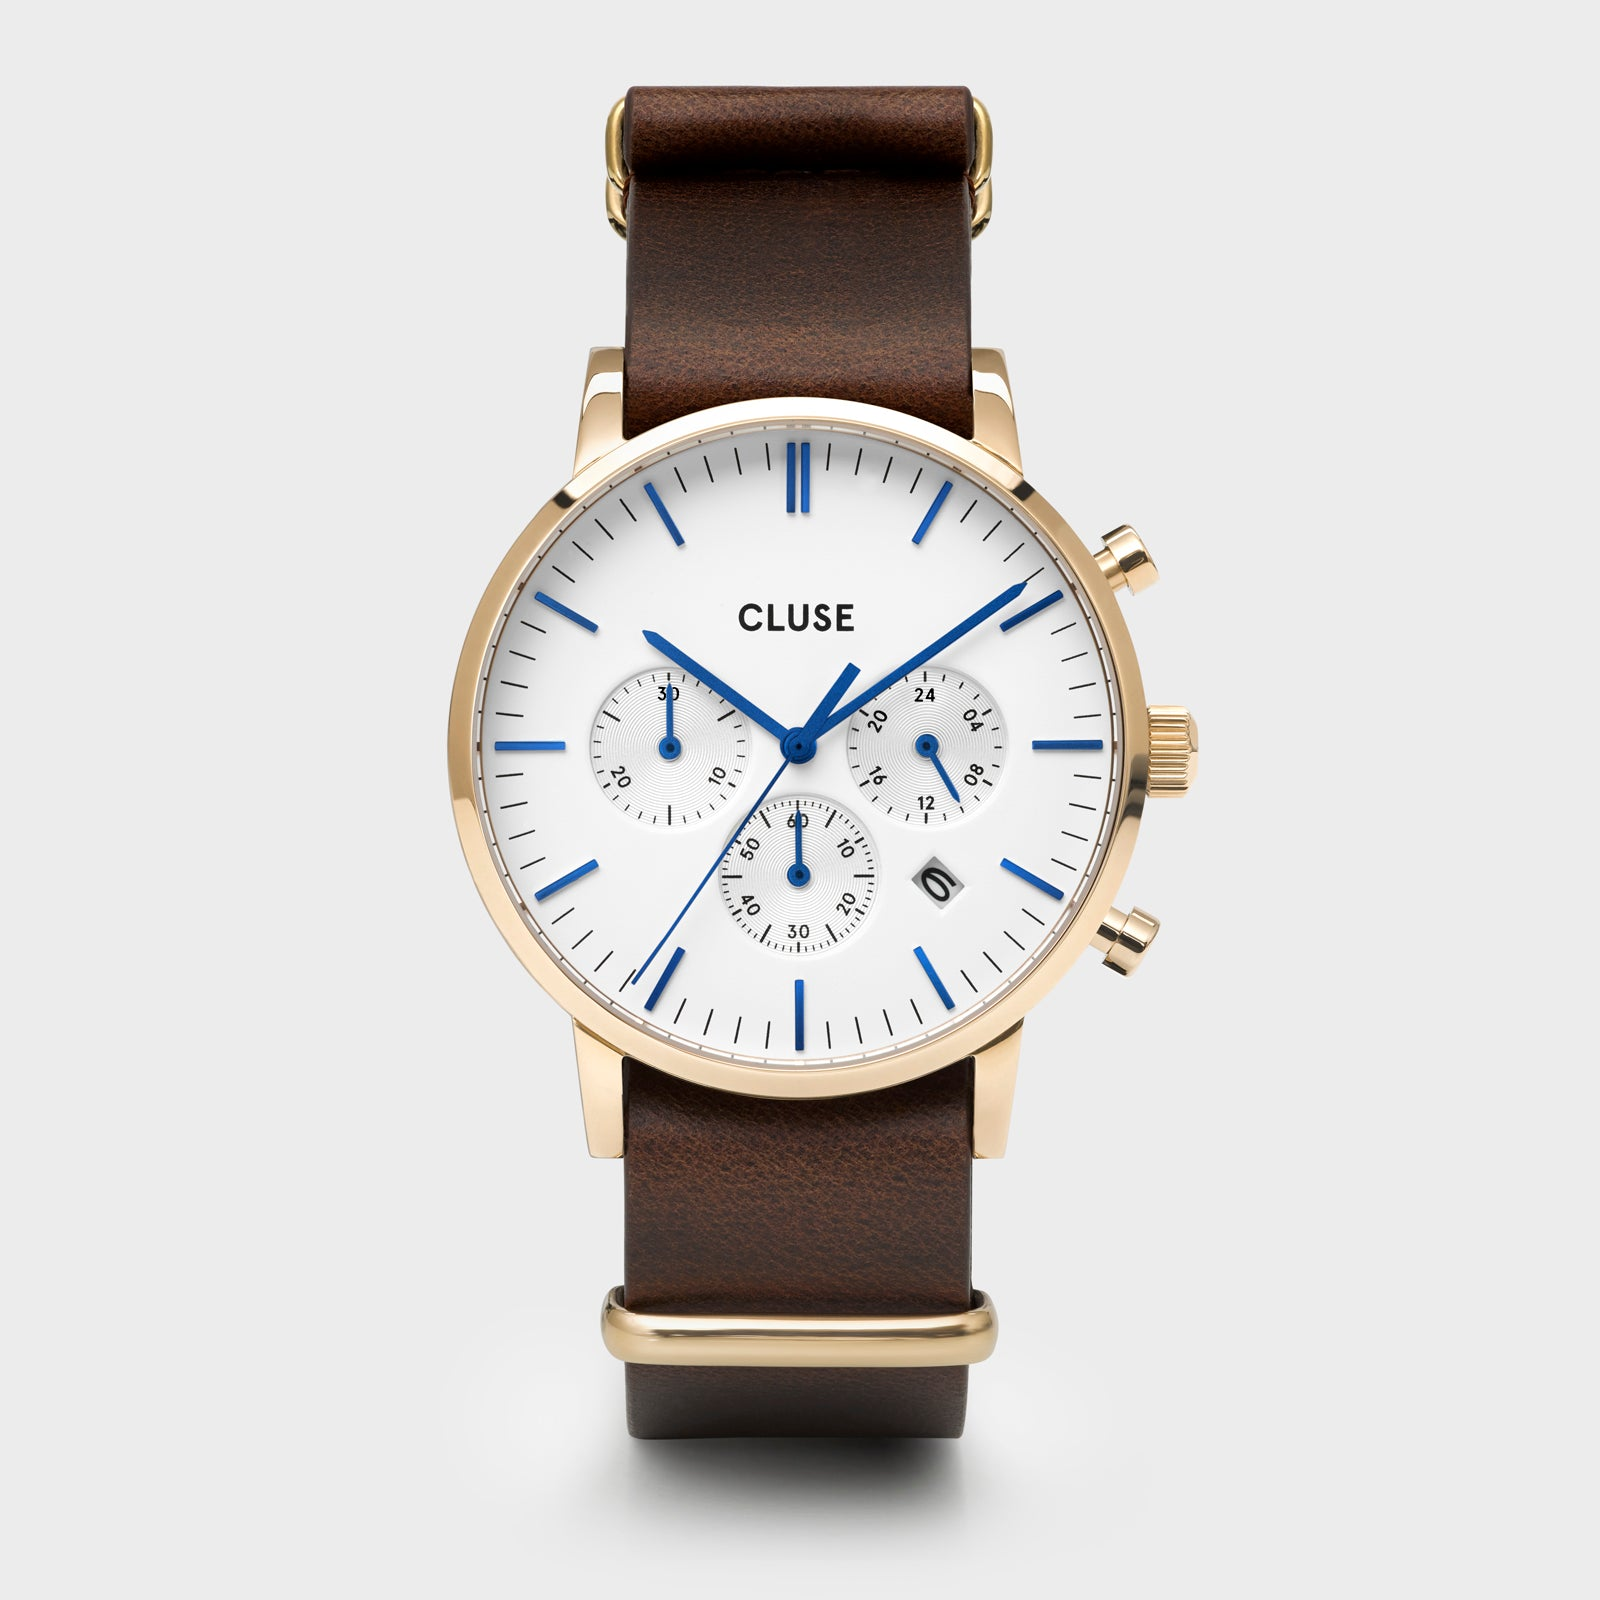 CLUSE Aravis chrono nato leather gold white/dark brown CW0101502009 - Reloj